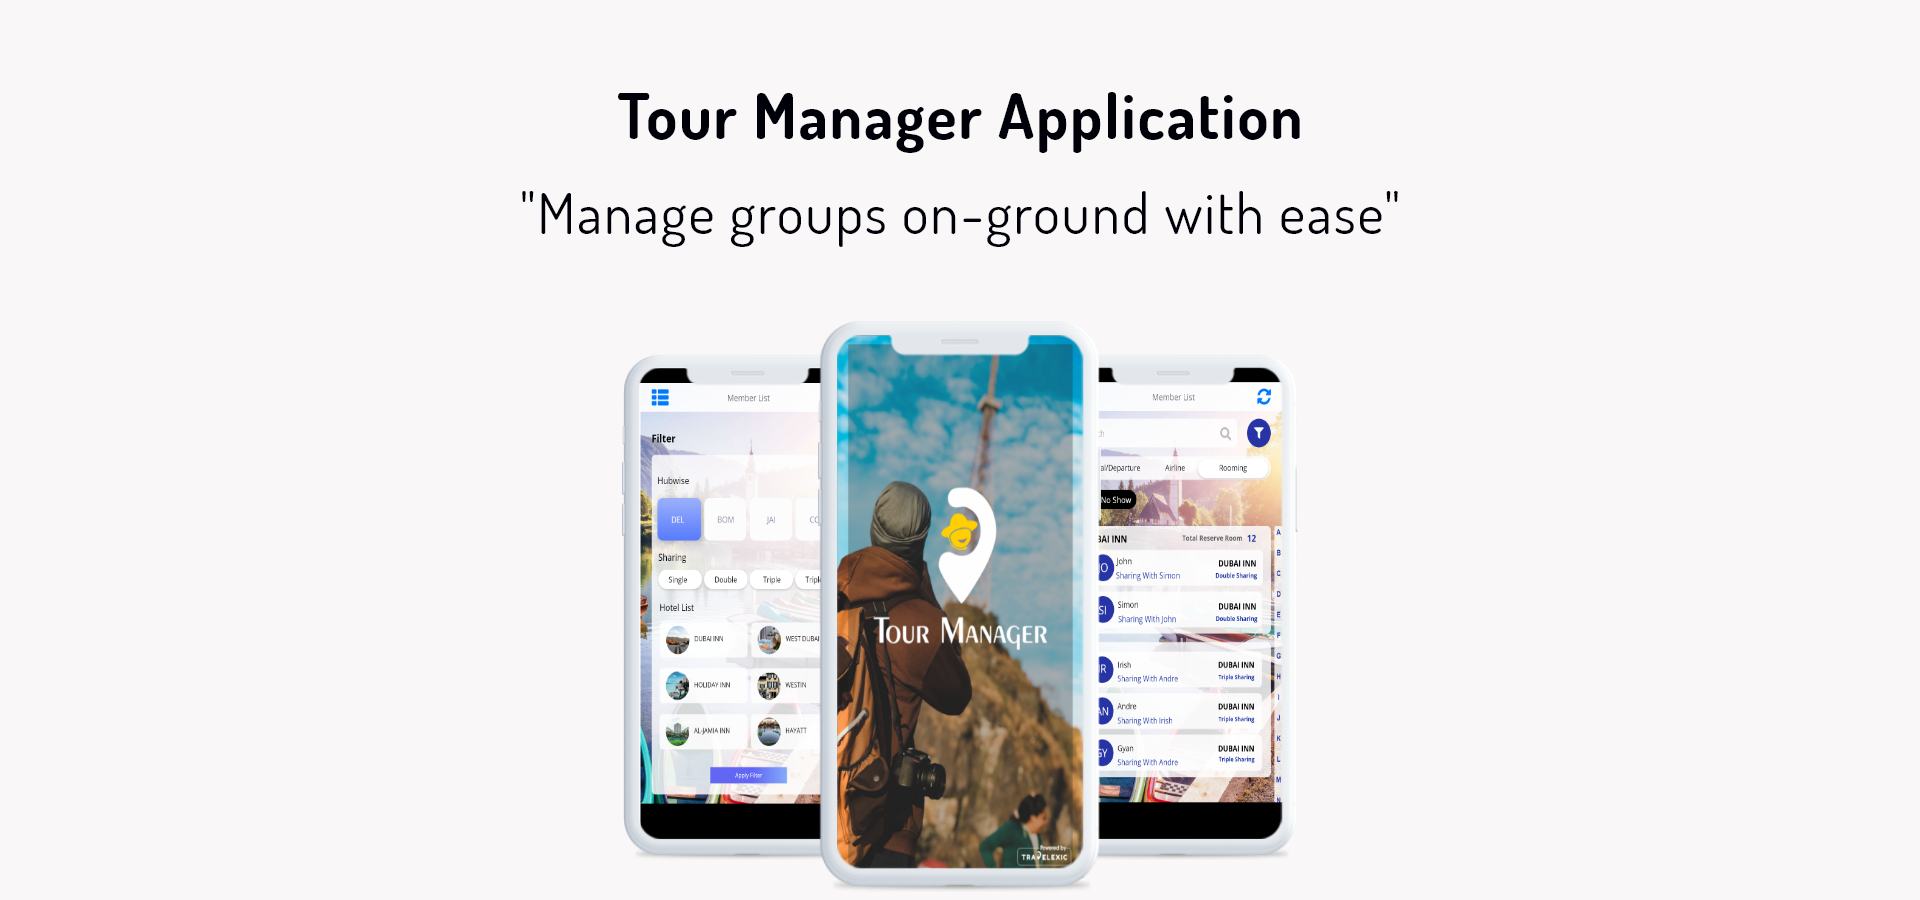 Tour Manager Application